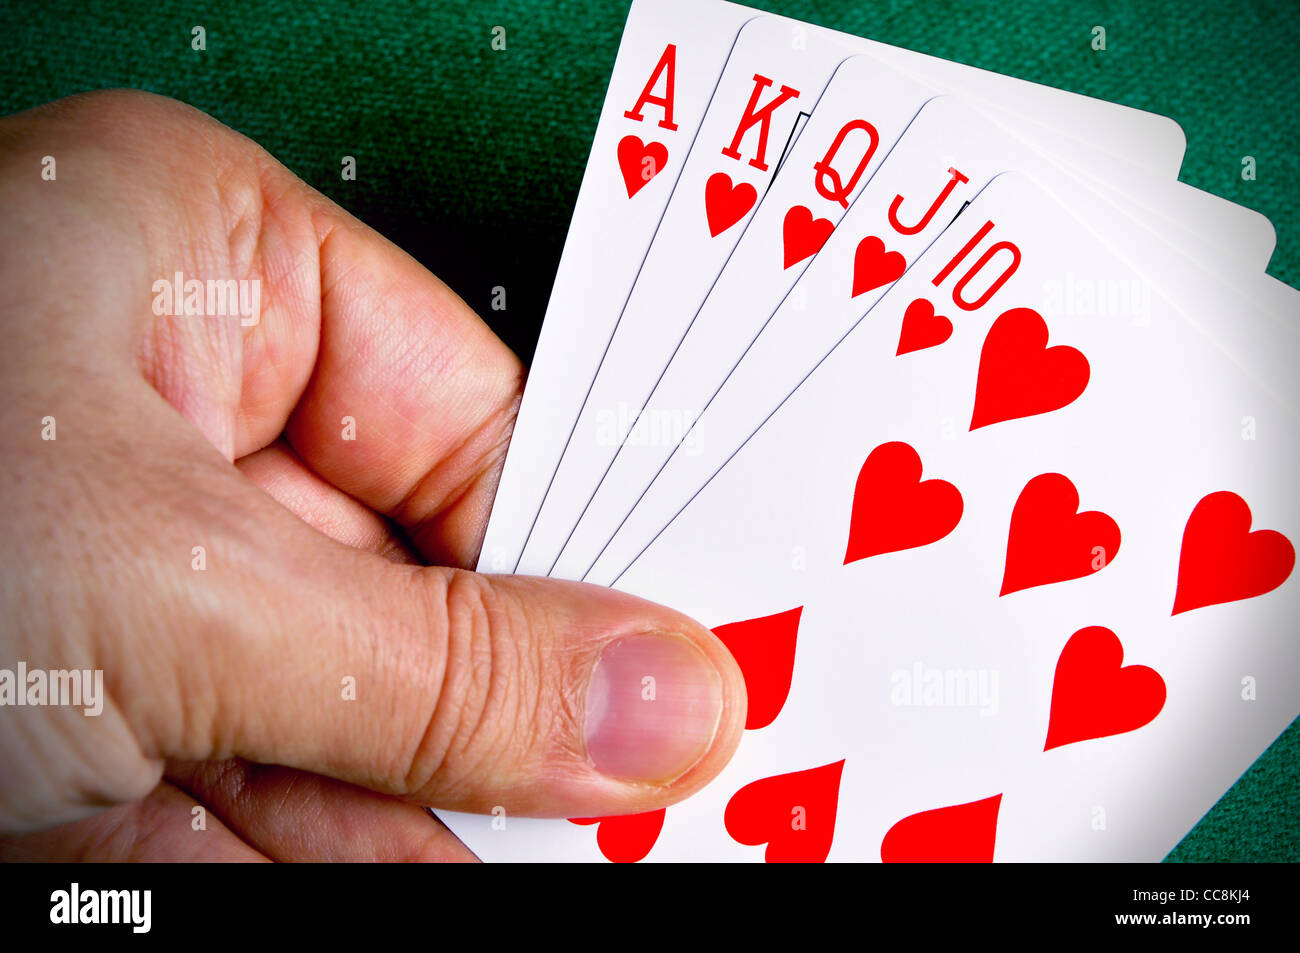 Hand holding a Royal Flush poker card sequence - Stock Image